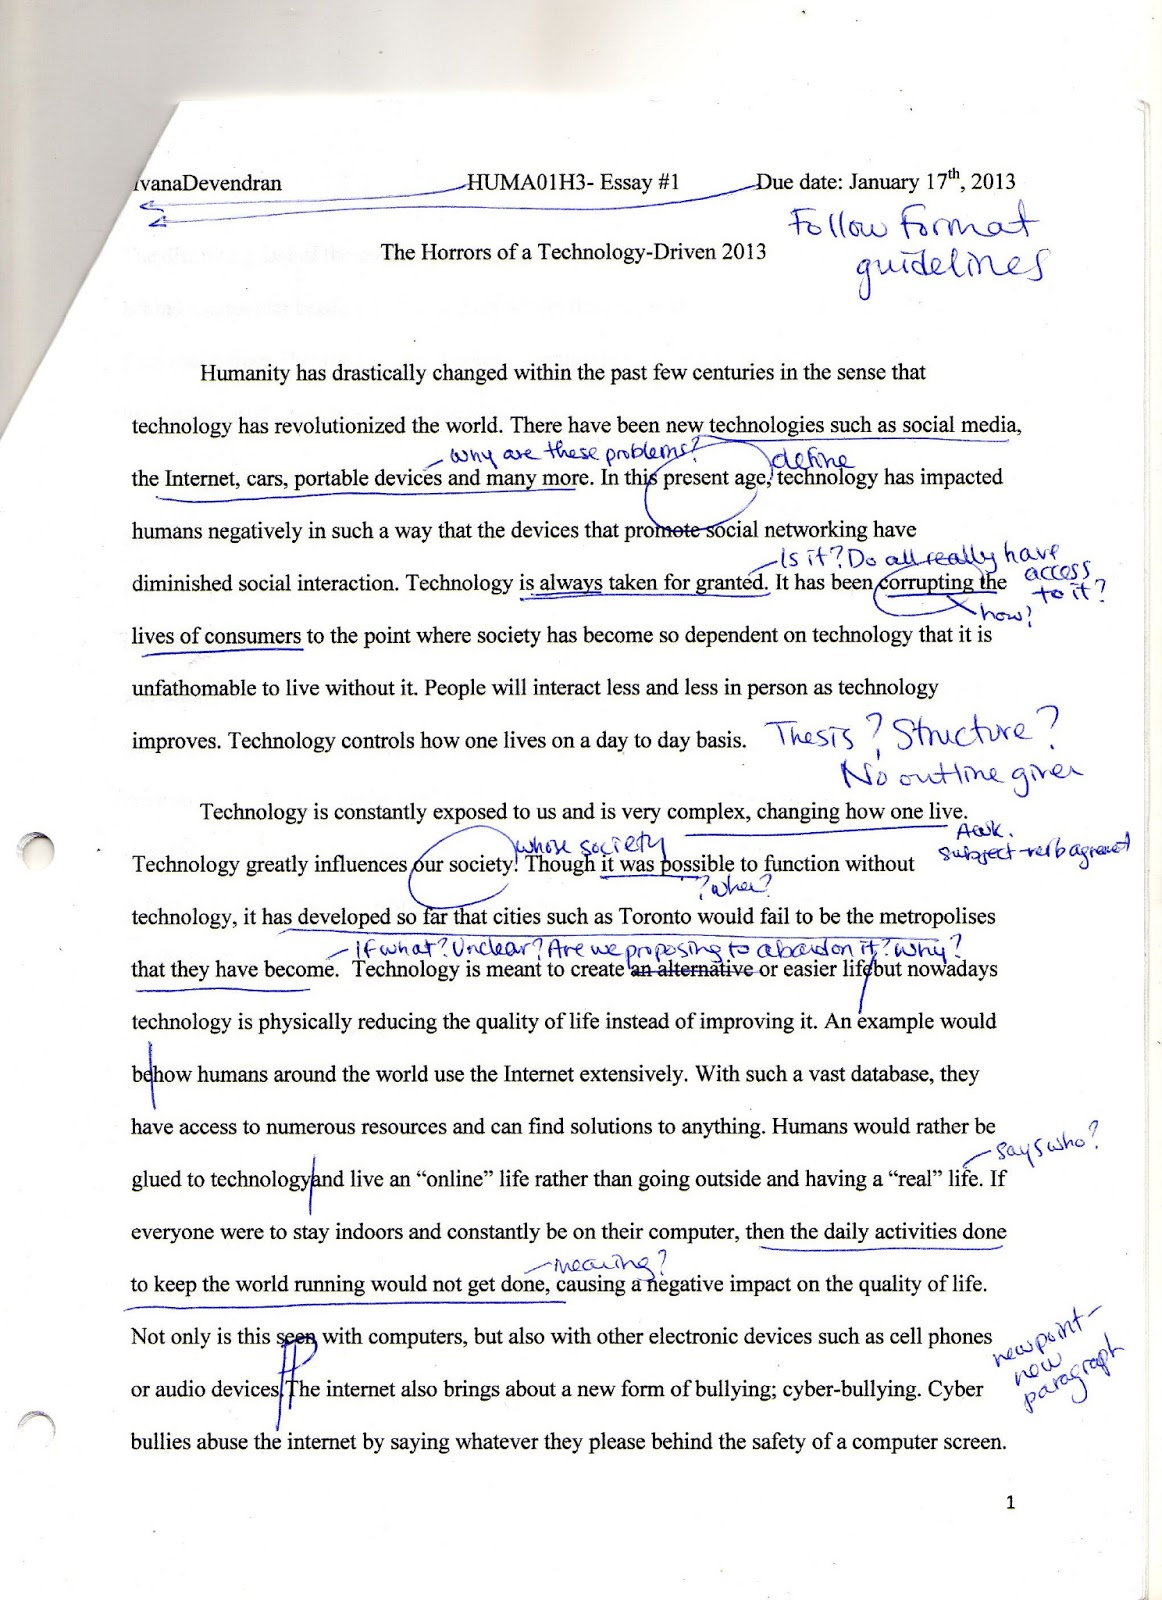 humanities essays humanities essay topics compucenter humanities humanities essay topics compucenter coessays on humanities causes and effects essay topicsamazing topics peculiarities and tips